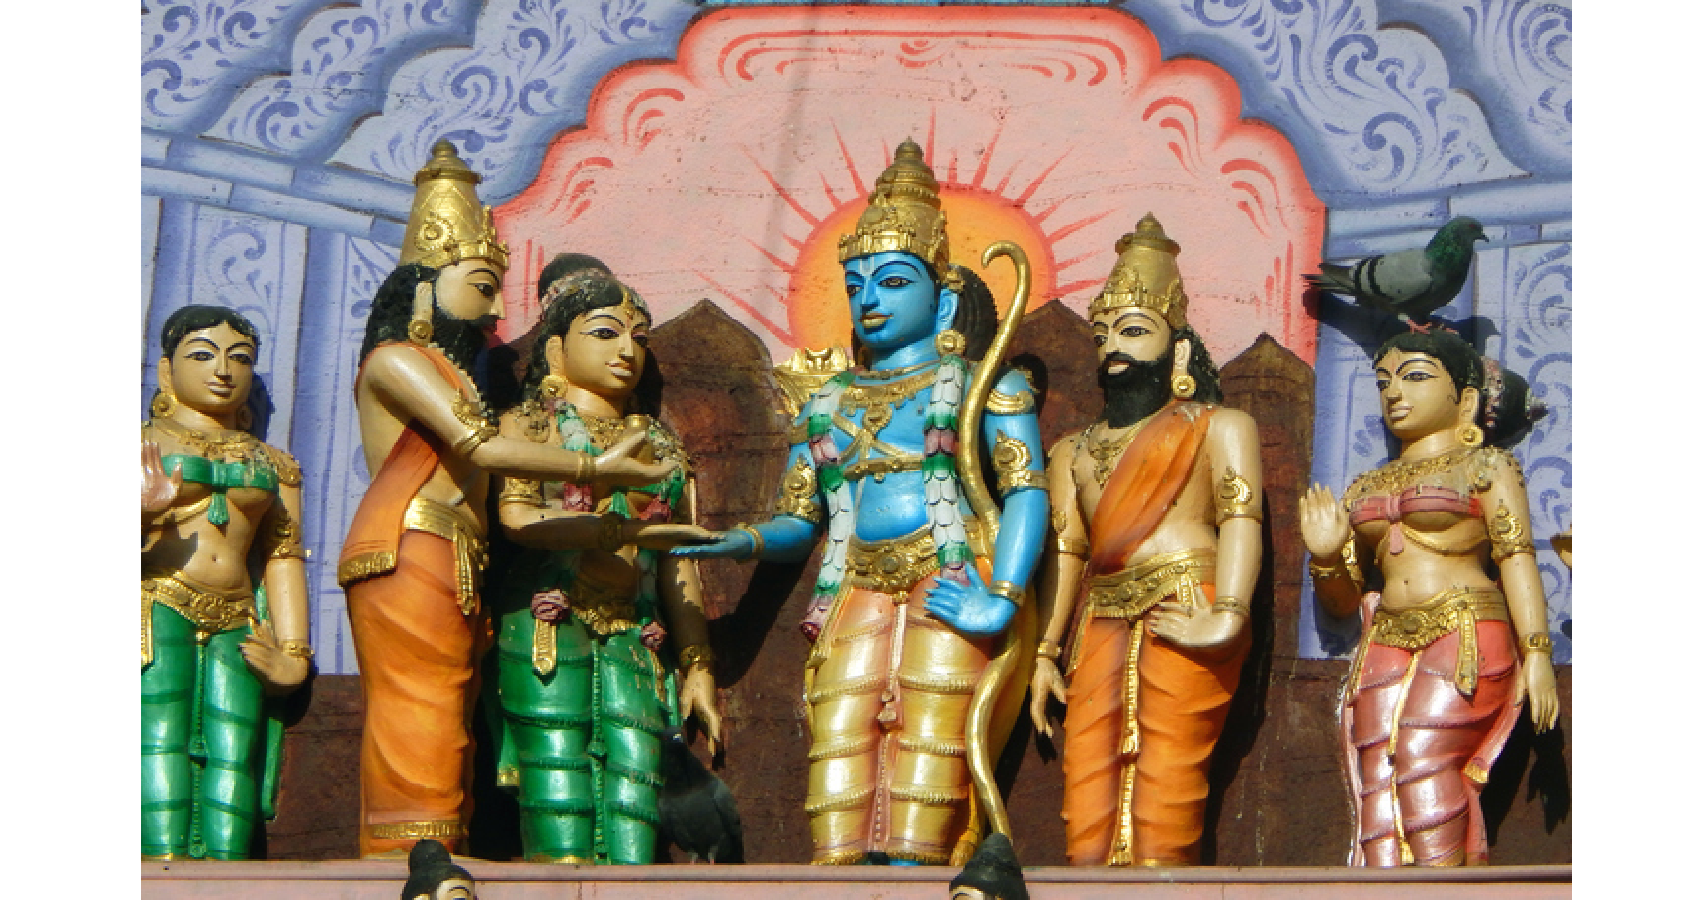 Global Encyclopedia On Ramayana To Release On Saturday